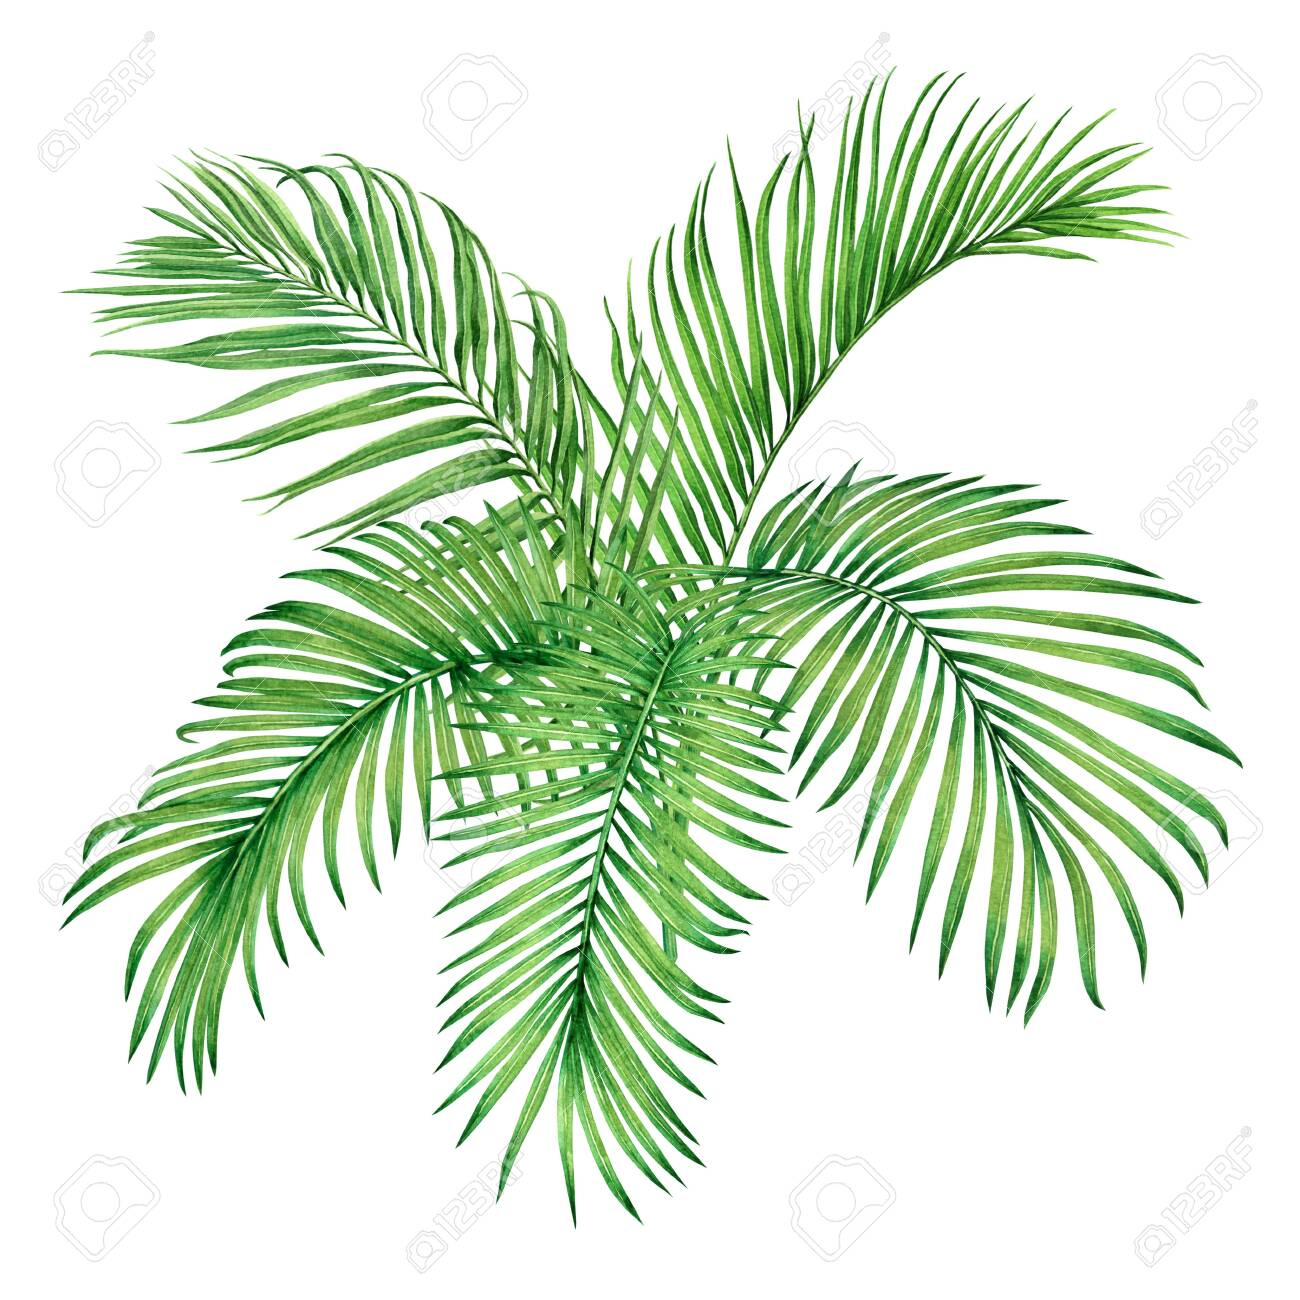 Watercolor painting tree coconut,palm leaf,green leave isolated on white background.Watercolor hand painted illustration tropical tree exotic leaf for wallpaper vintage Hawaii jungle style pattern. - 137886971